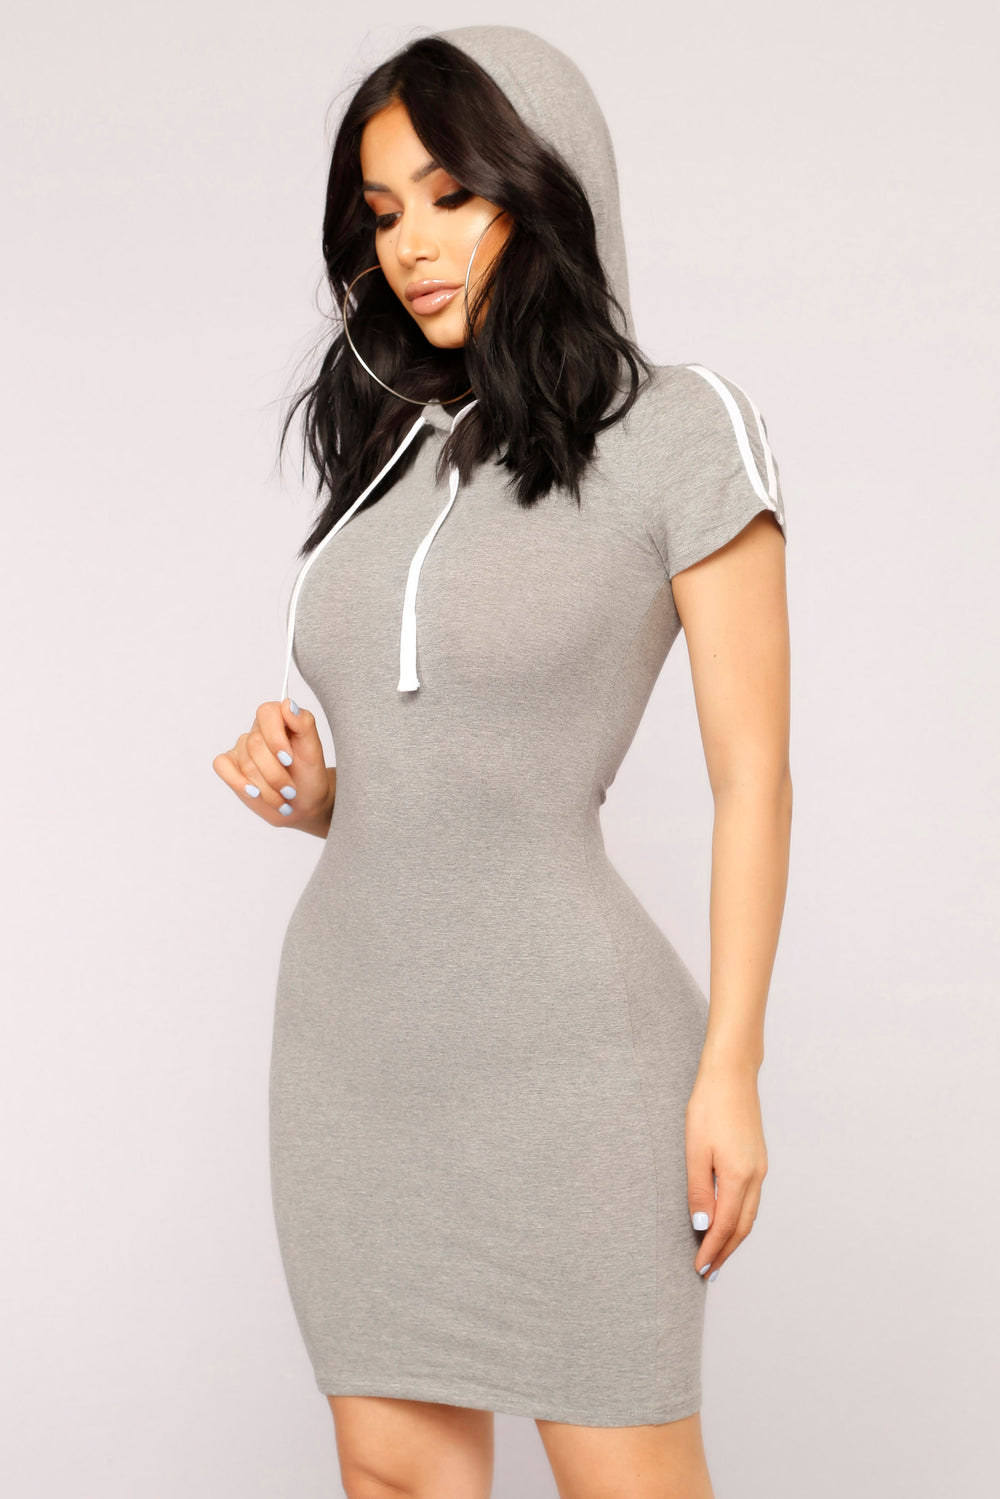 Get Stripe To It Dress - Grey